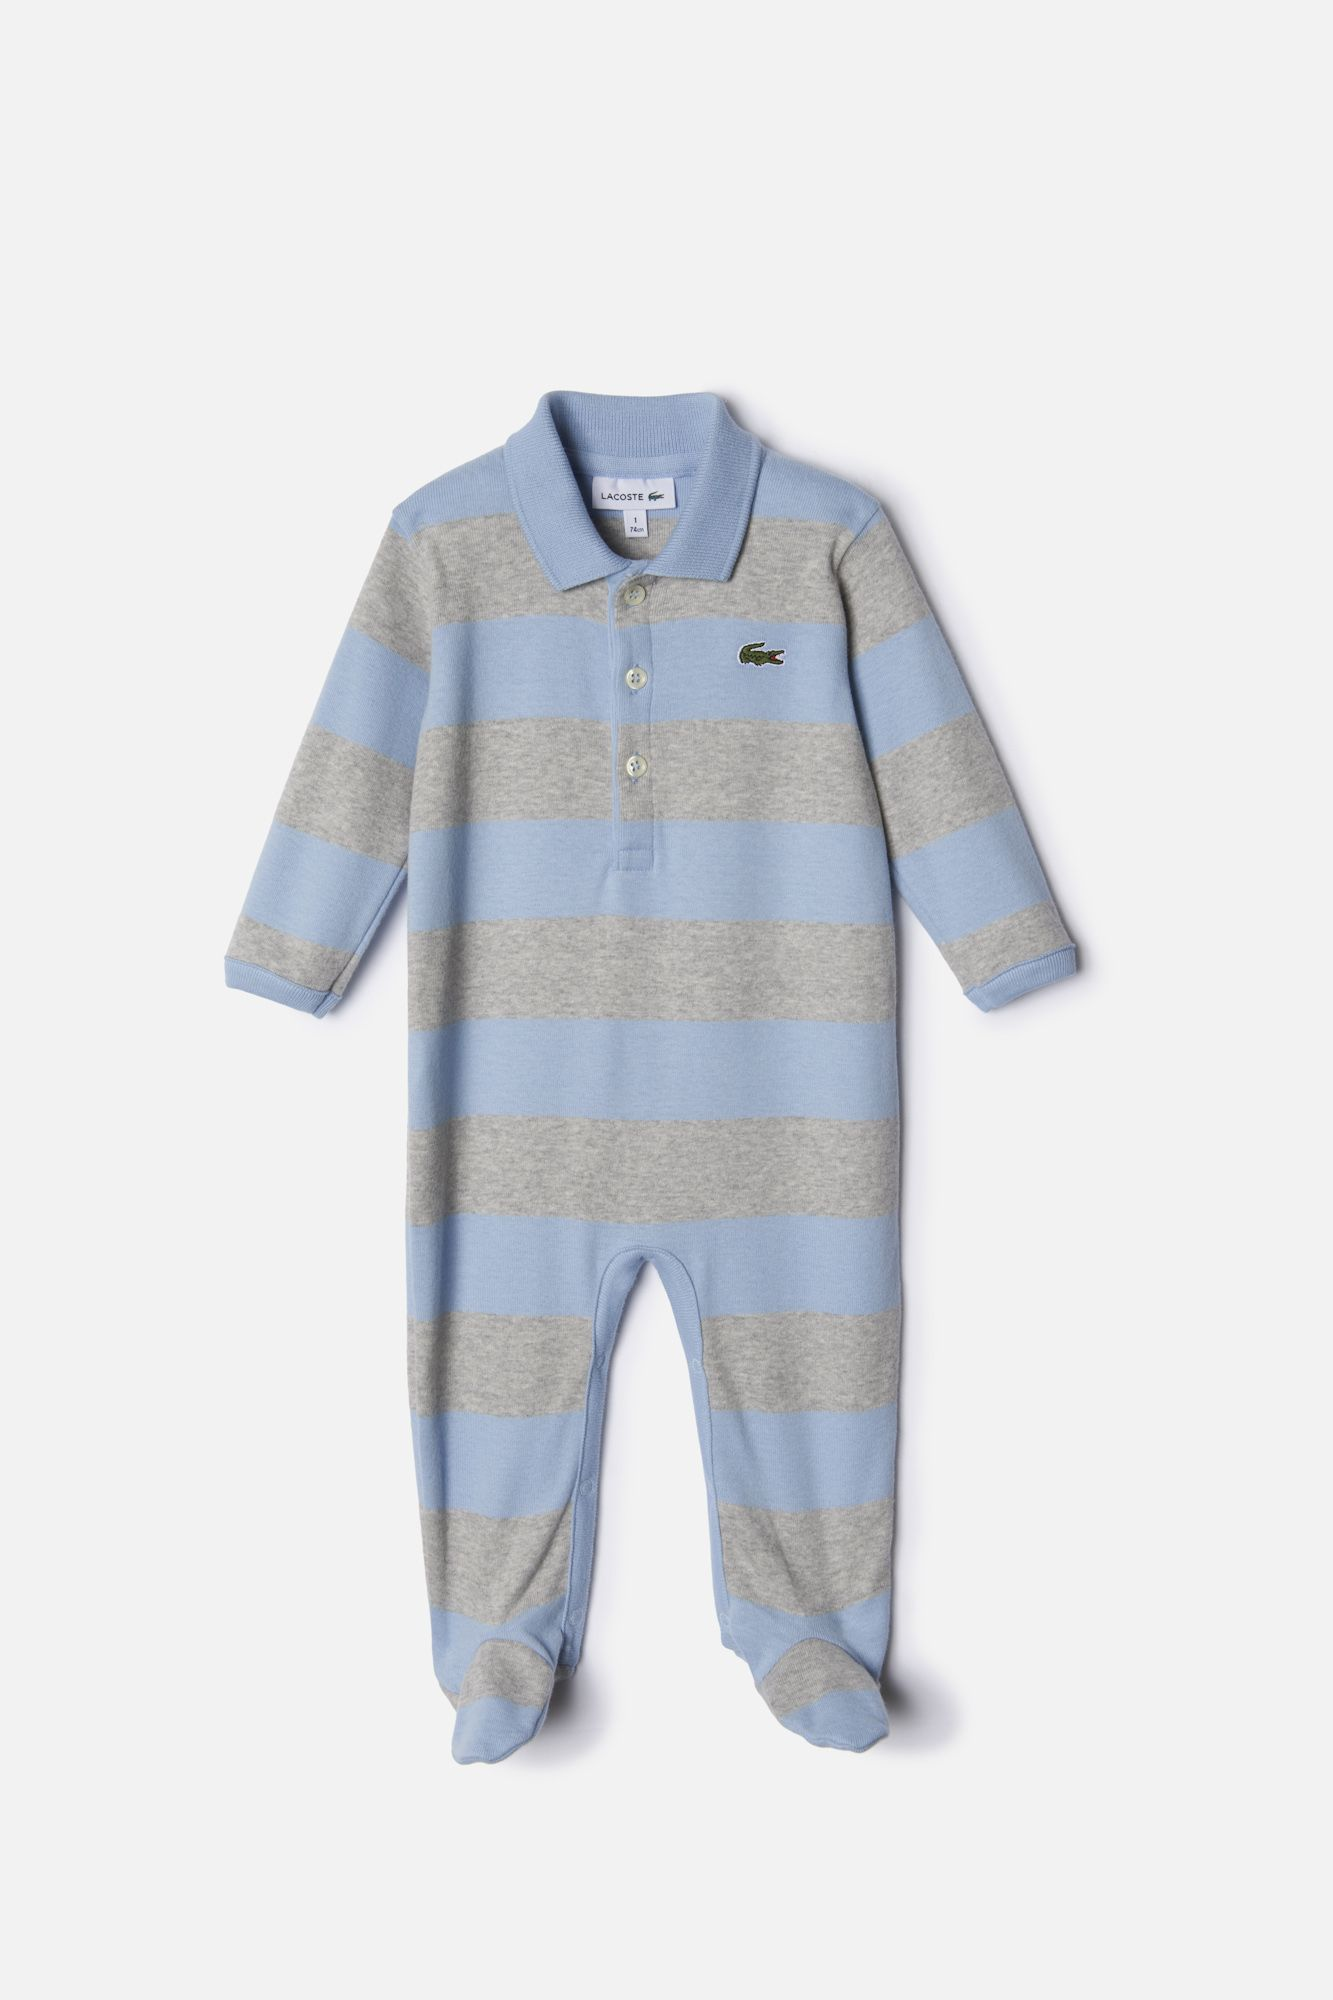 Find lacoste baby sets at Macy's Macy's Presents: The Edit - A curated mix of fashion and inspiration Check It Out Free Shipping with $49 purchase + Free Store Pickup.